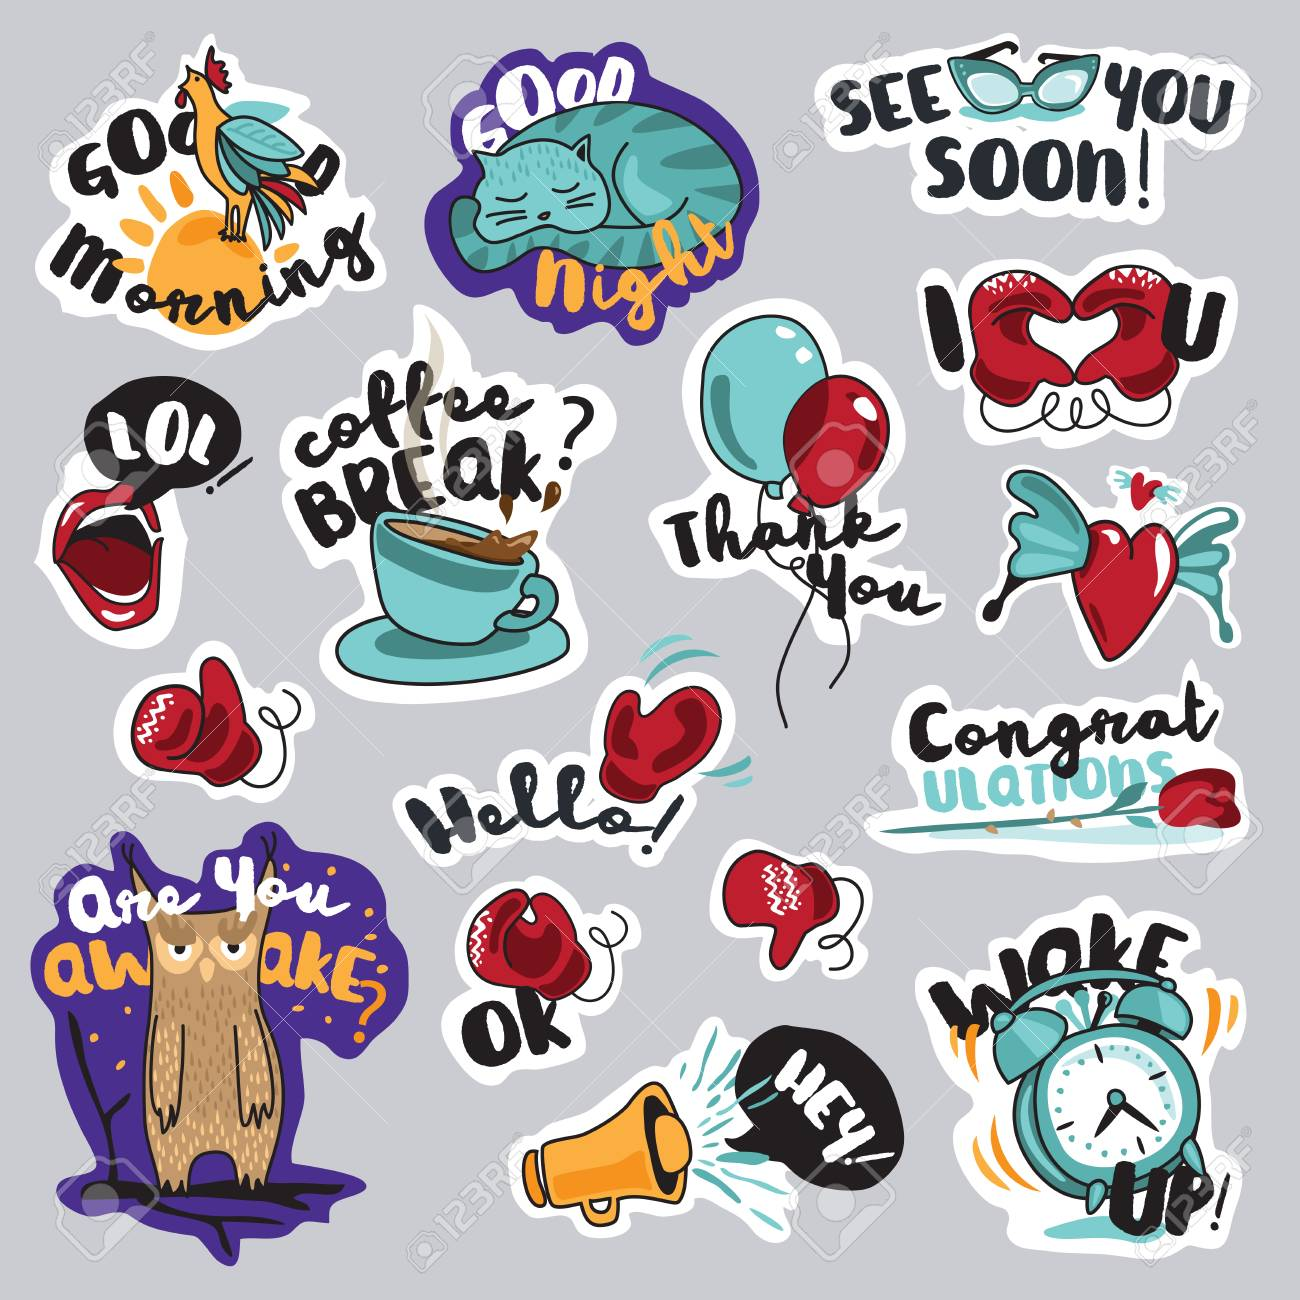 Set of funny stickers for social network everyday stickers for mobile messages chat